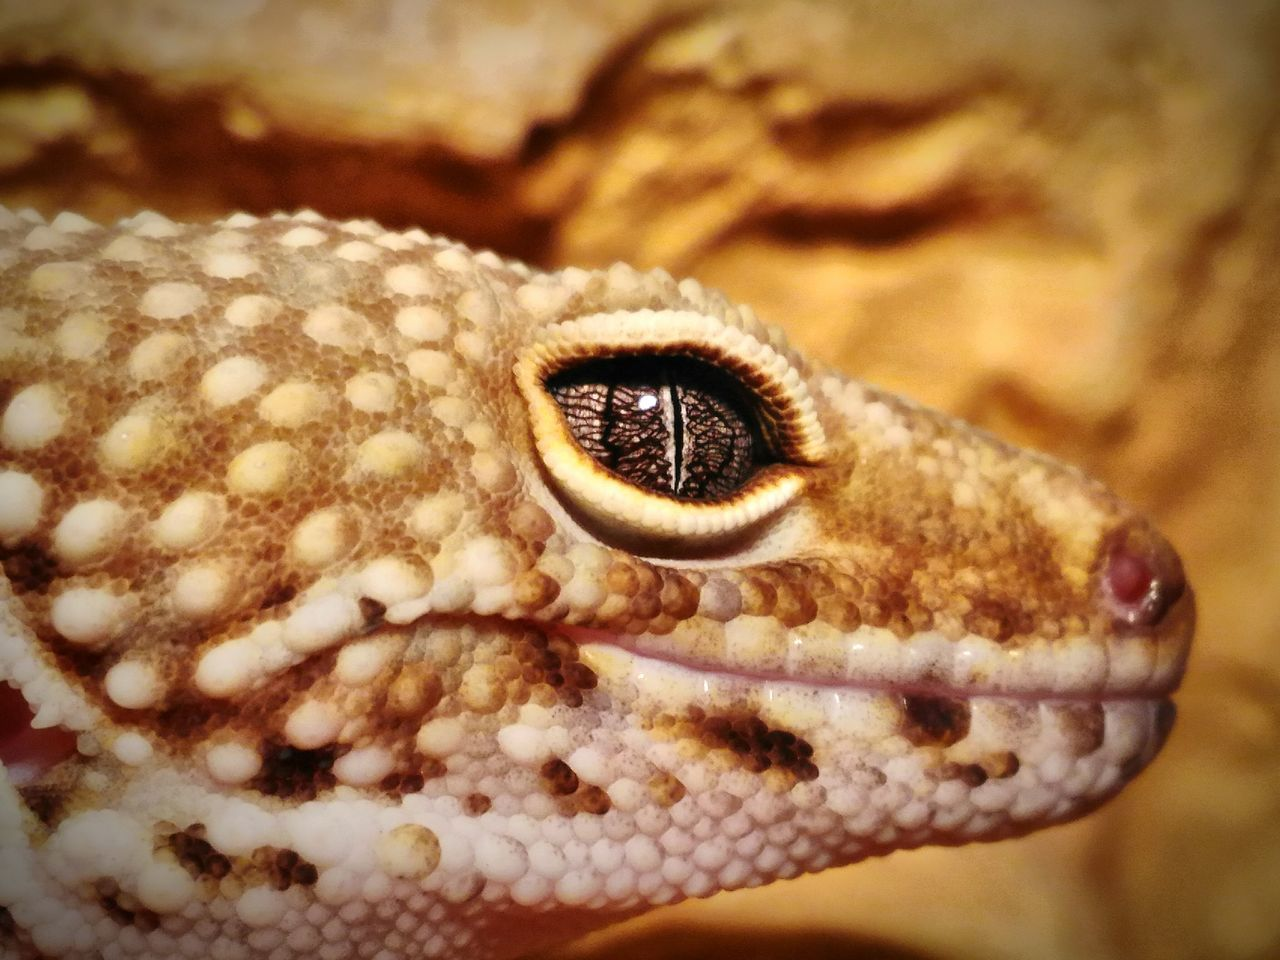 Side View Close-Up Of Leopard Gecko